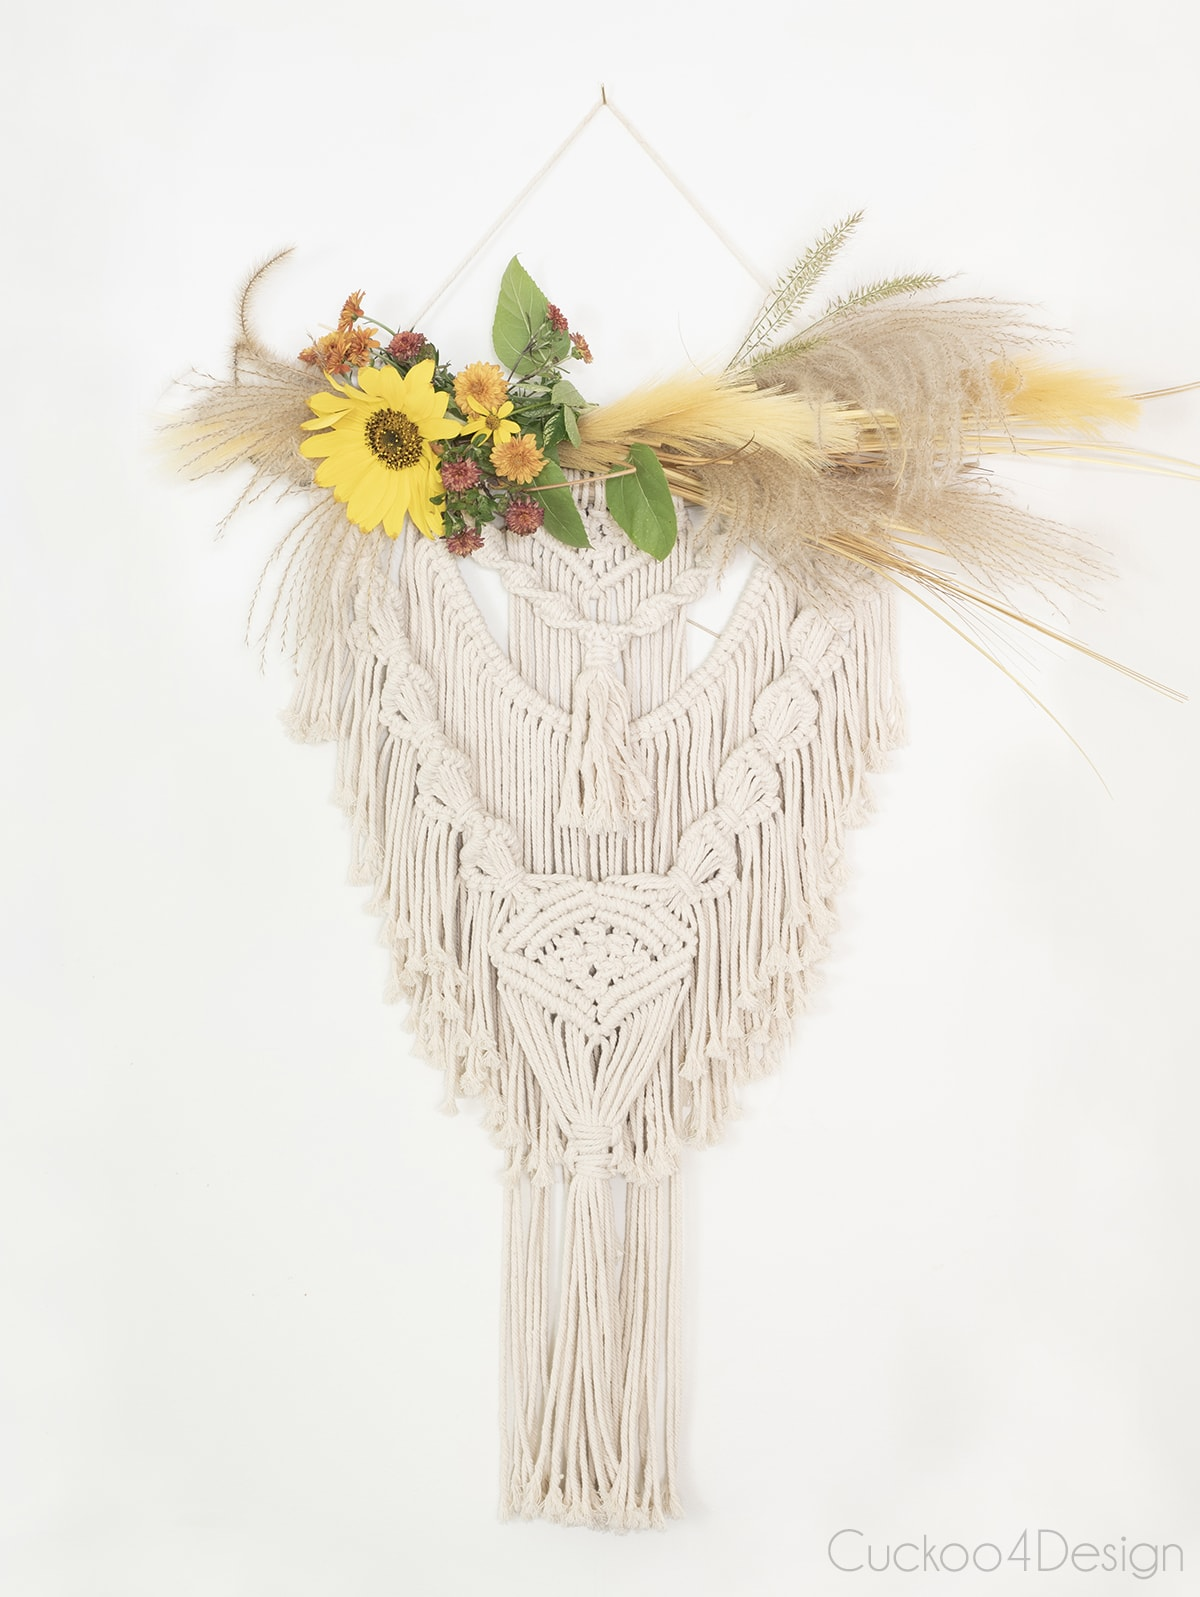 macrame wall hanging with mums, sun flowers and autumn grasses